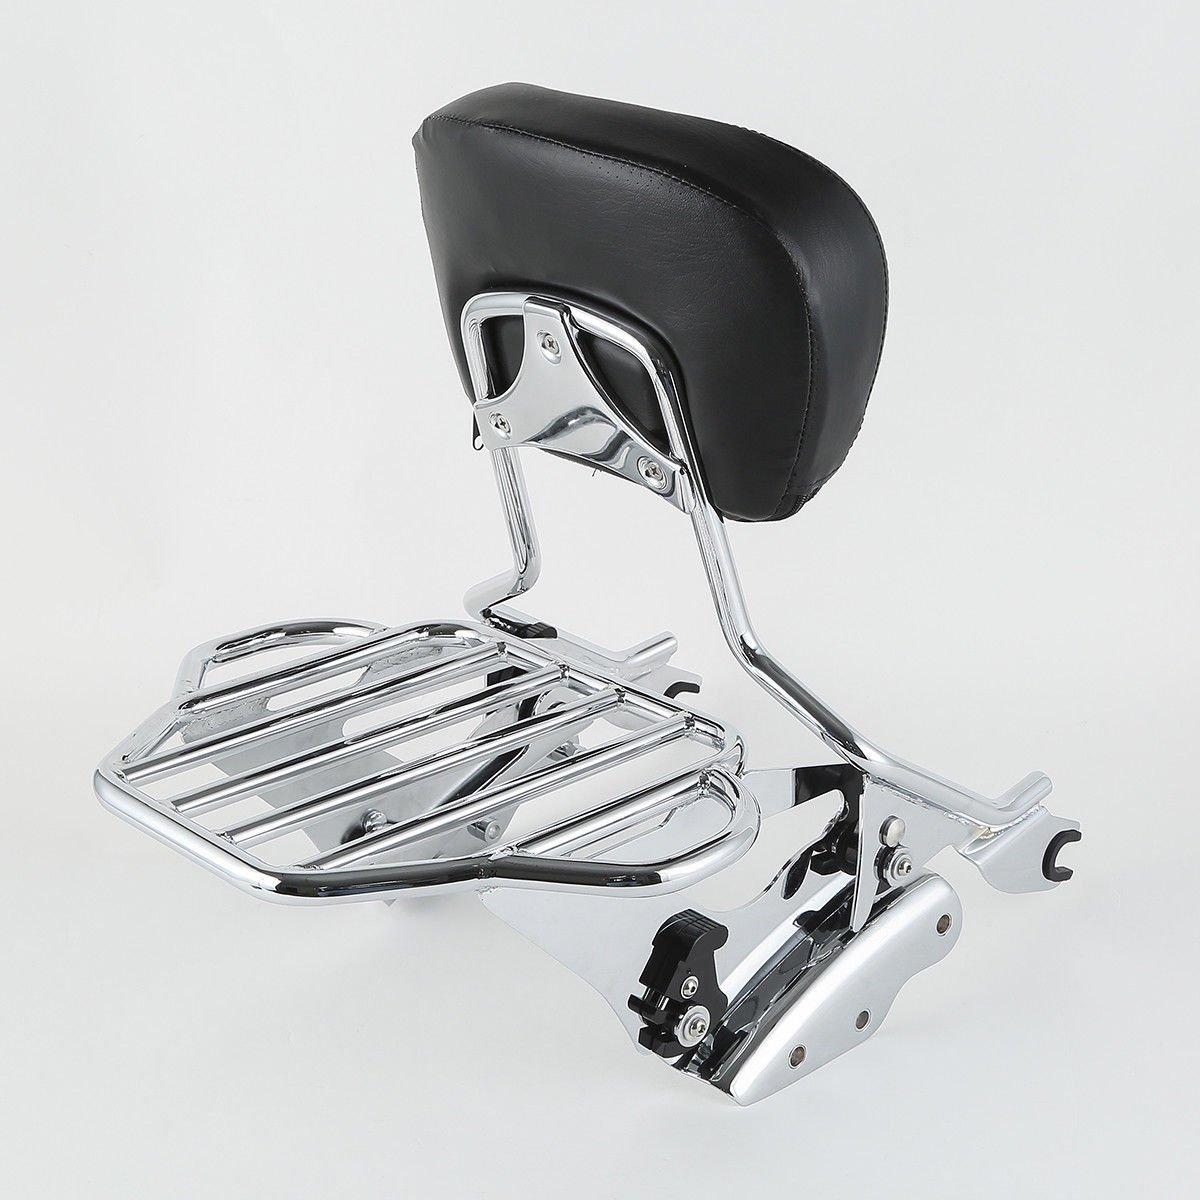 XFMT H-D Detachables Tall Sissy Bar Upright-Short Powersports Sissy Bars Passenger Backrest Luggage Rack 4 Point Docking Kit Compatible with 2009-2013 Harley Davidson Touring Model